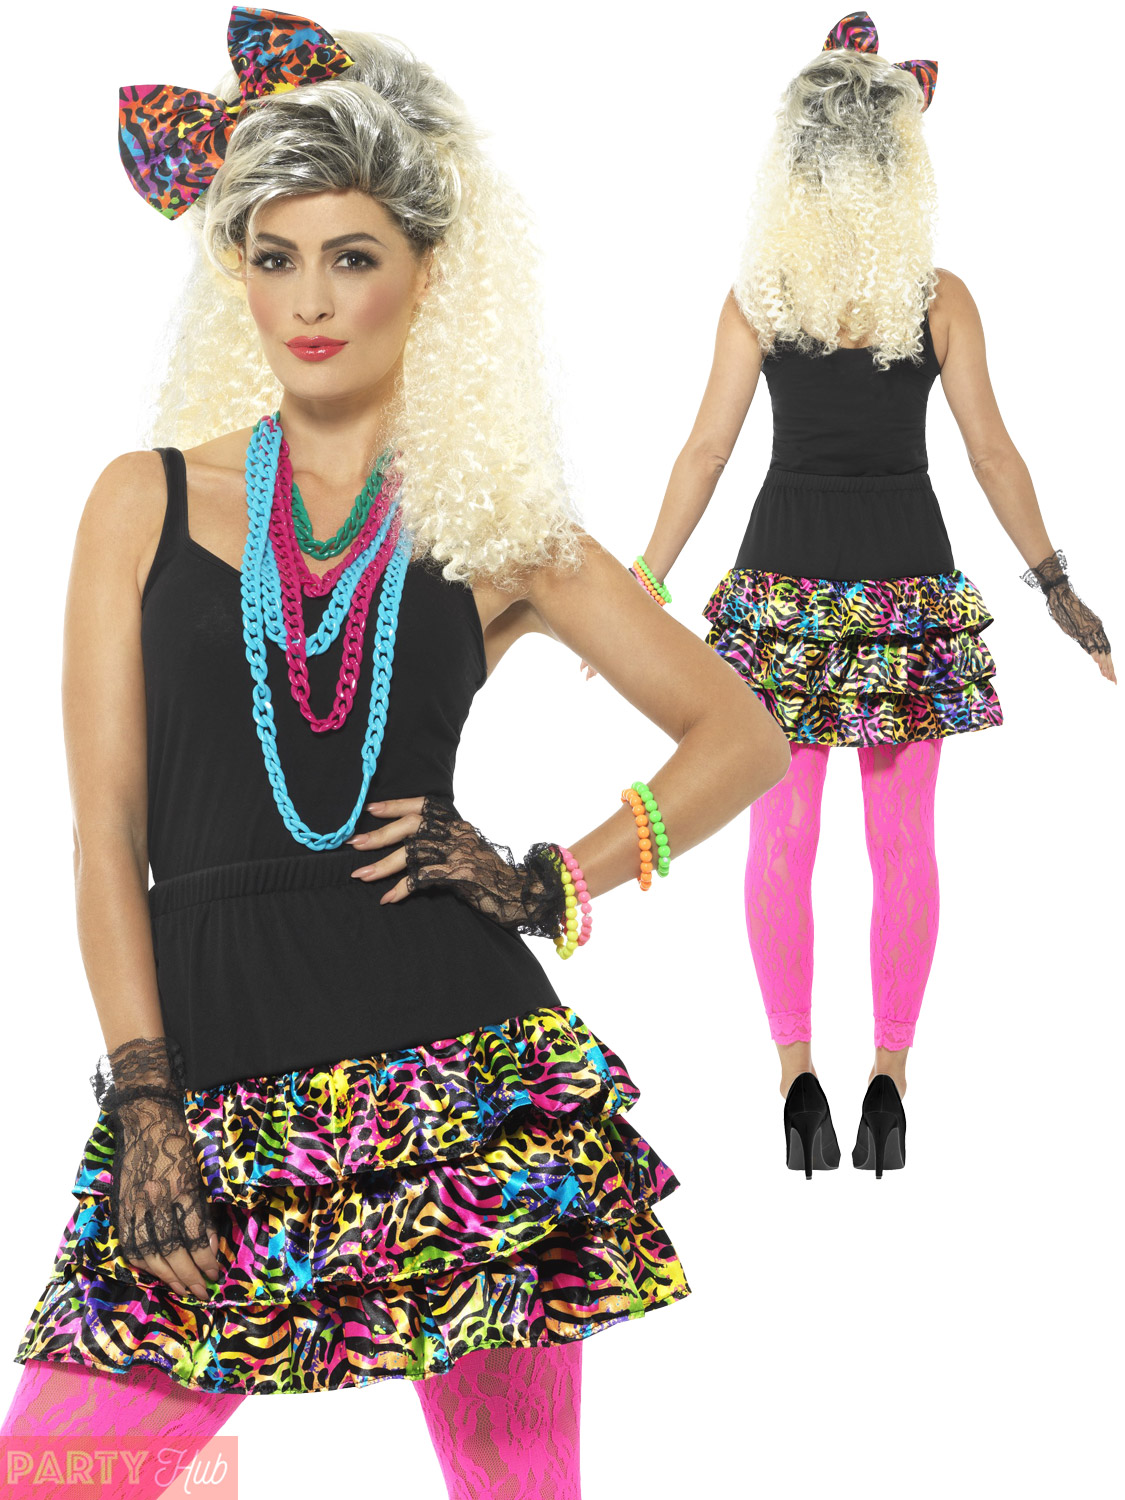 80s Vintage Clothing In The Uk Just Got Easier: Ladies 80s Fancy Dress Costume Accessories Adult Retro